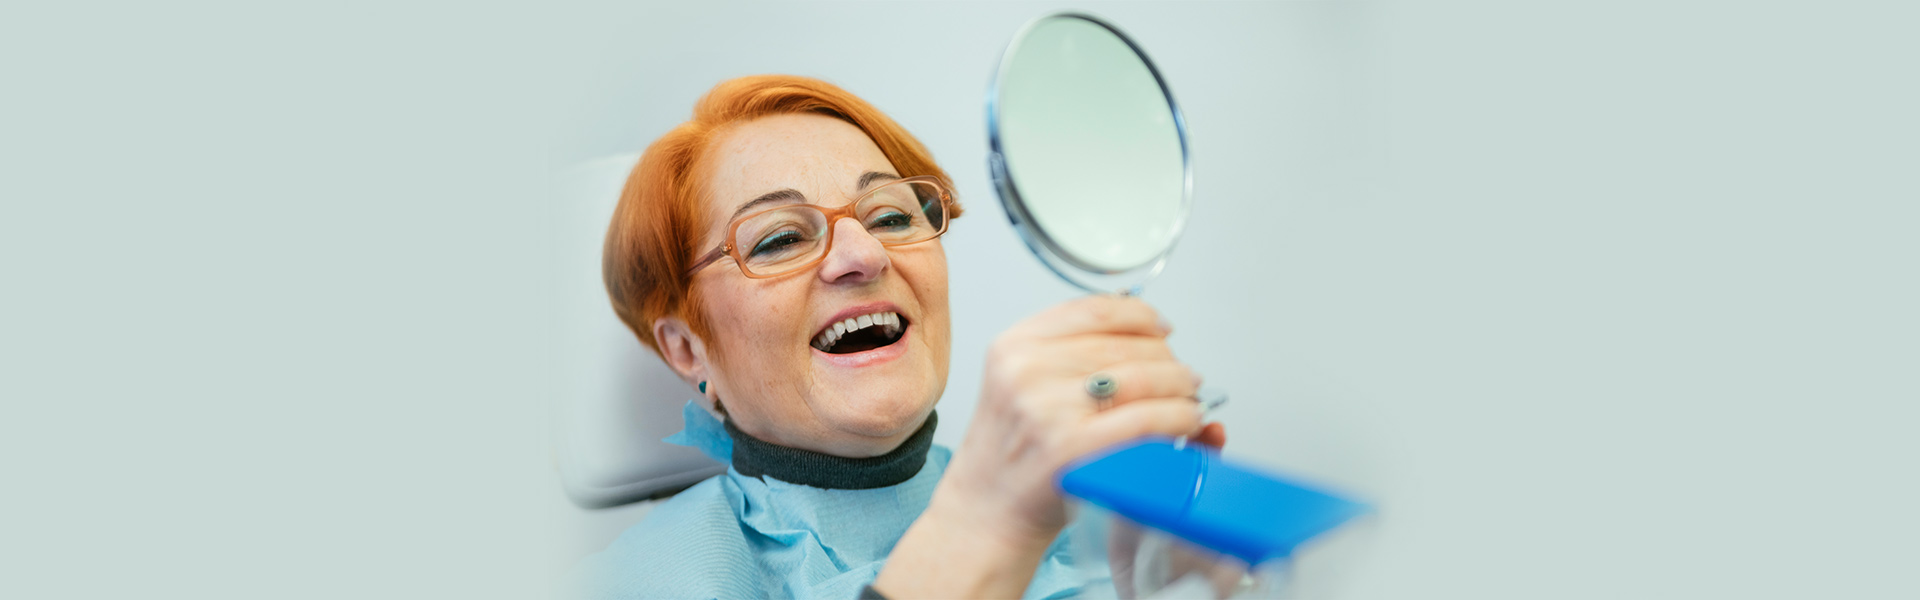 Quick and Affordable Denture Repair Desired by Many Wearers